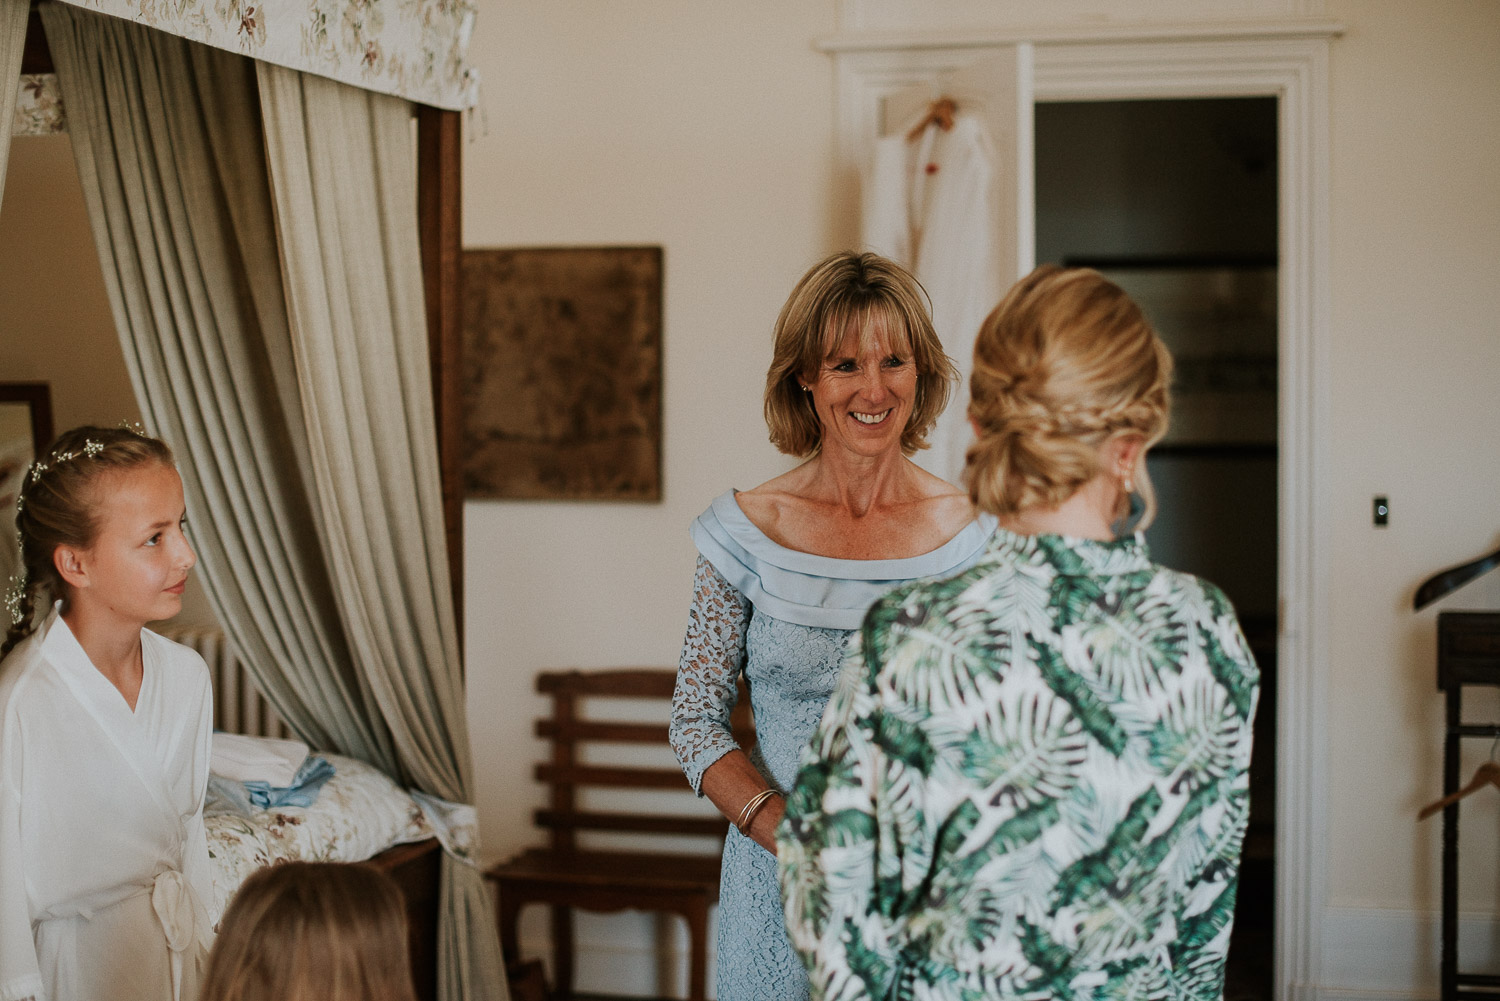 bergerac_wedding_katy_webb_photography_france_UK69